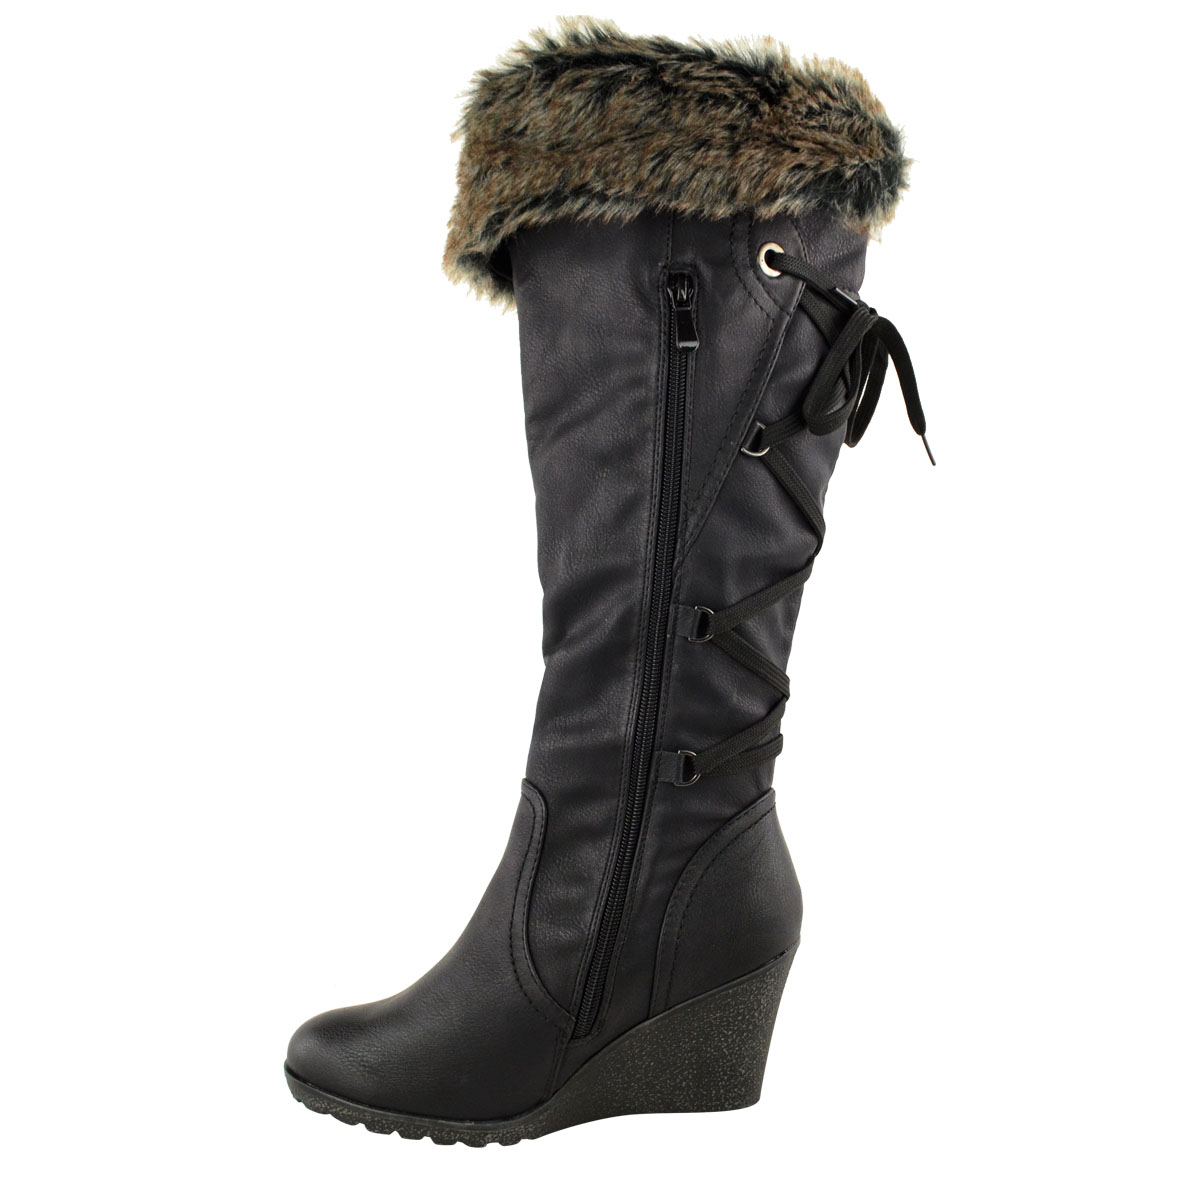 WOMENS-LADIES-MID-WEDGE-HIGH-HEEL-FUR-LINED-WARM-WINTER-KNEE-CALF-ZIP-BOOTS-SIZE thumbnail 5